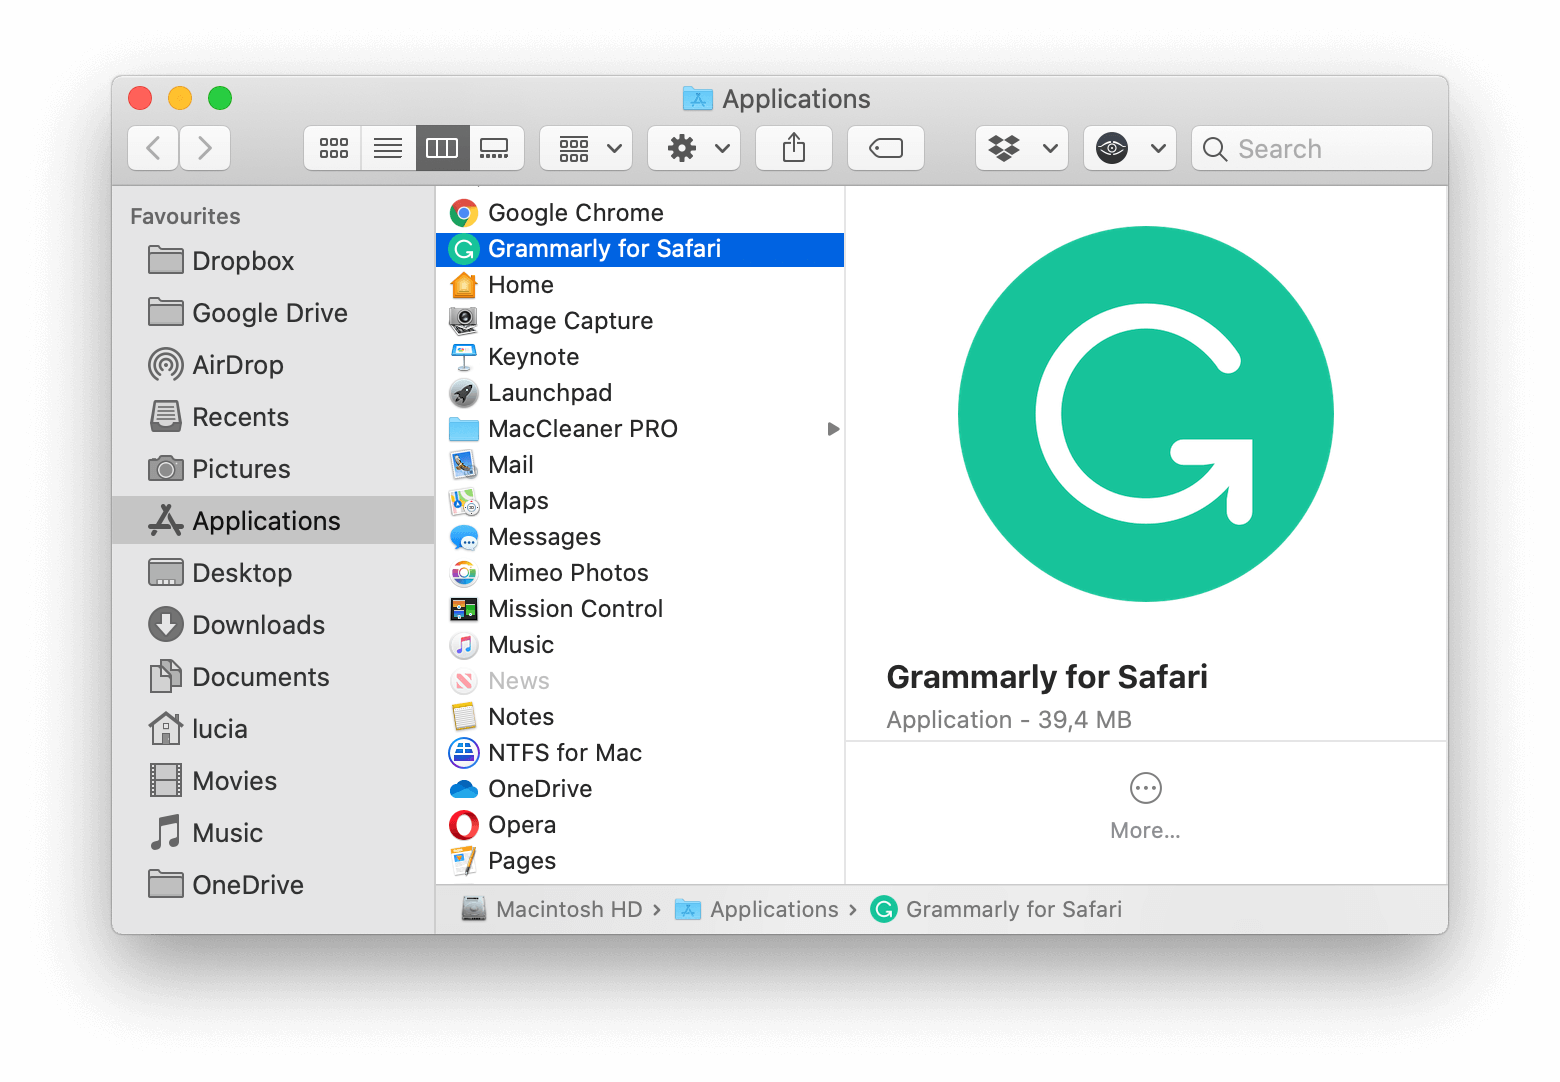 Grammarly for Safari application in Finder